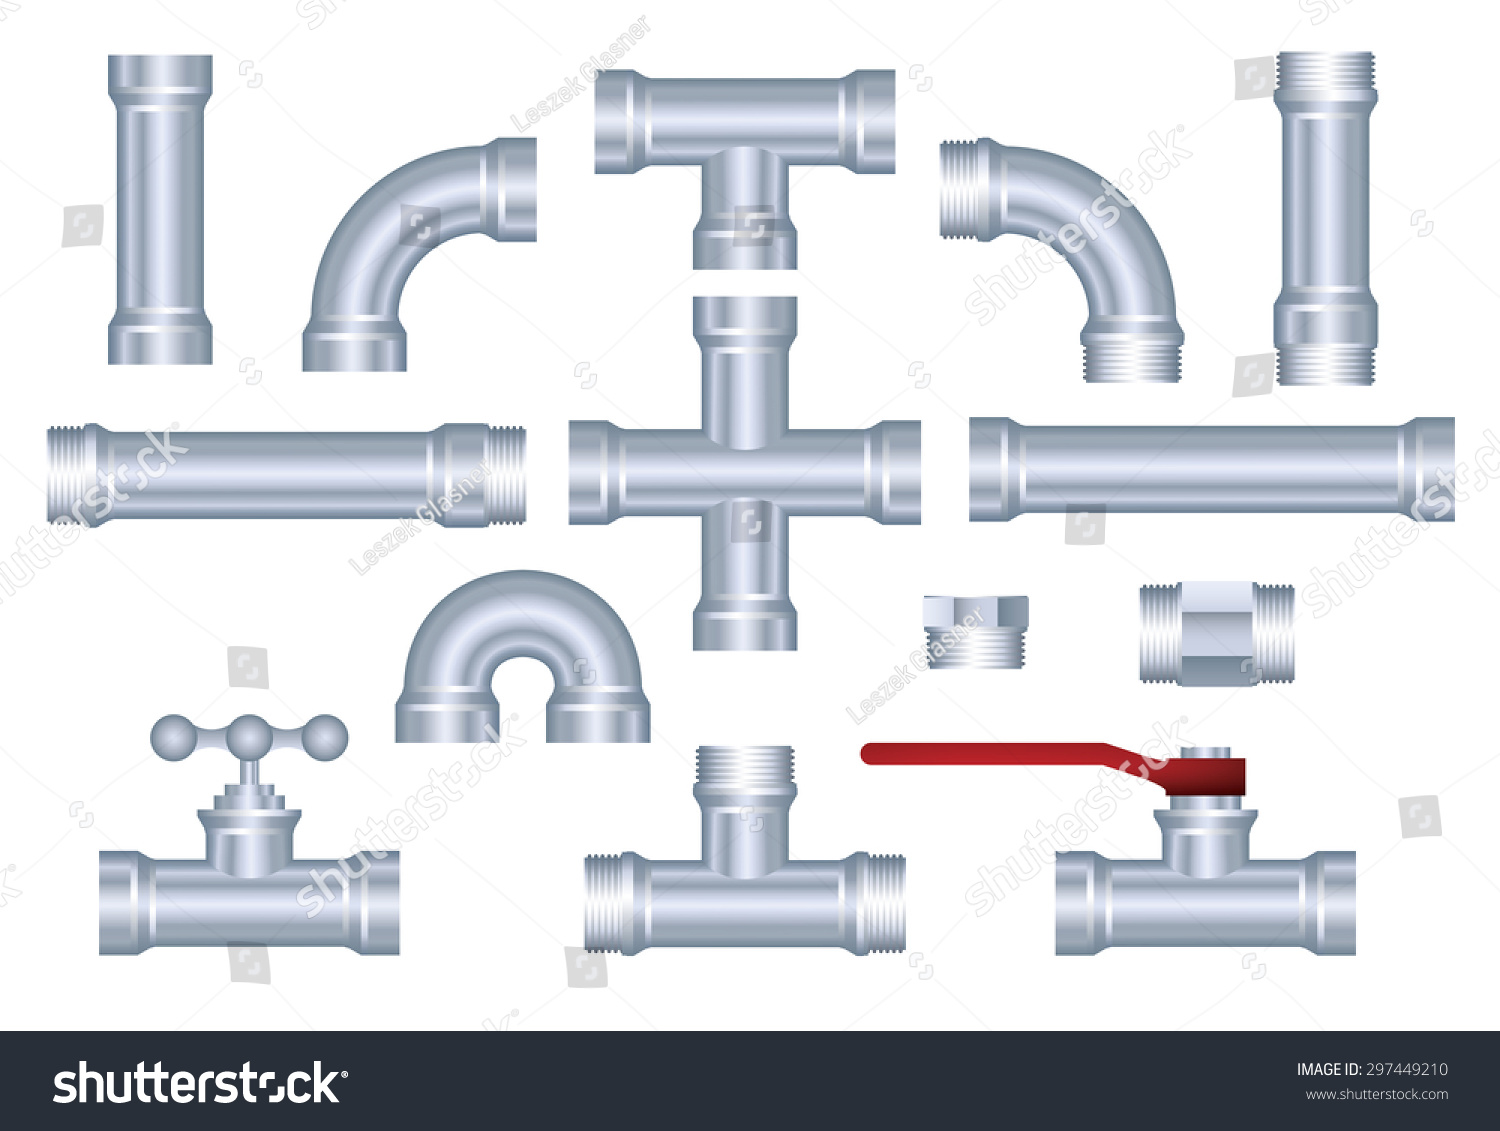 Uncategorized Plumbing Pieces vector pvc pipeline construction pieces set stock 297449210 set